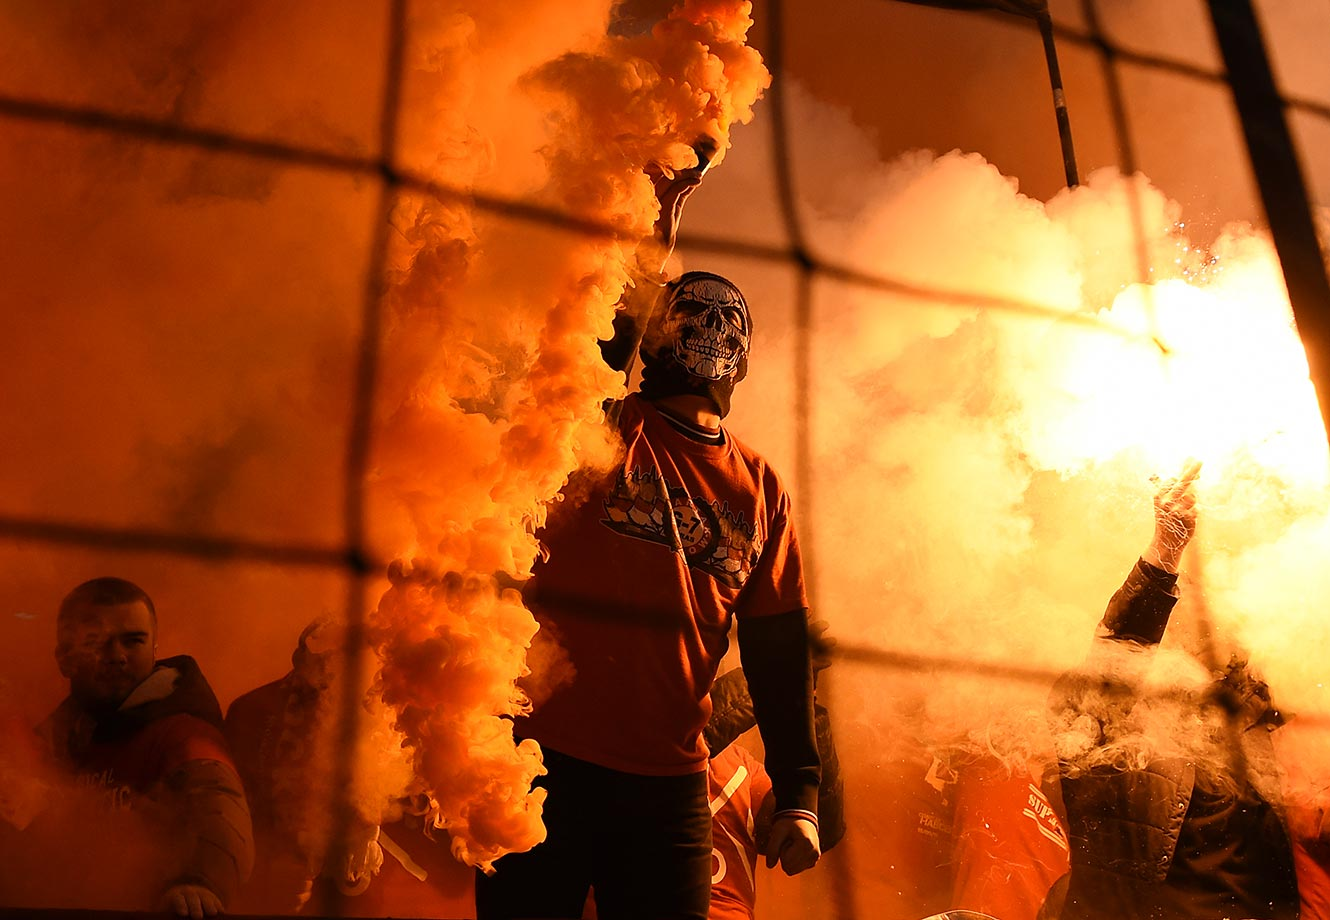 FC Spartak Moscow fans light flares during the Russian Premier League match between FC Spartak Moscow and FC Krylia Sovetov Samara.